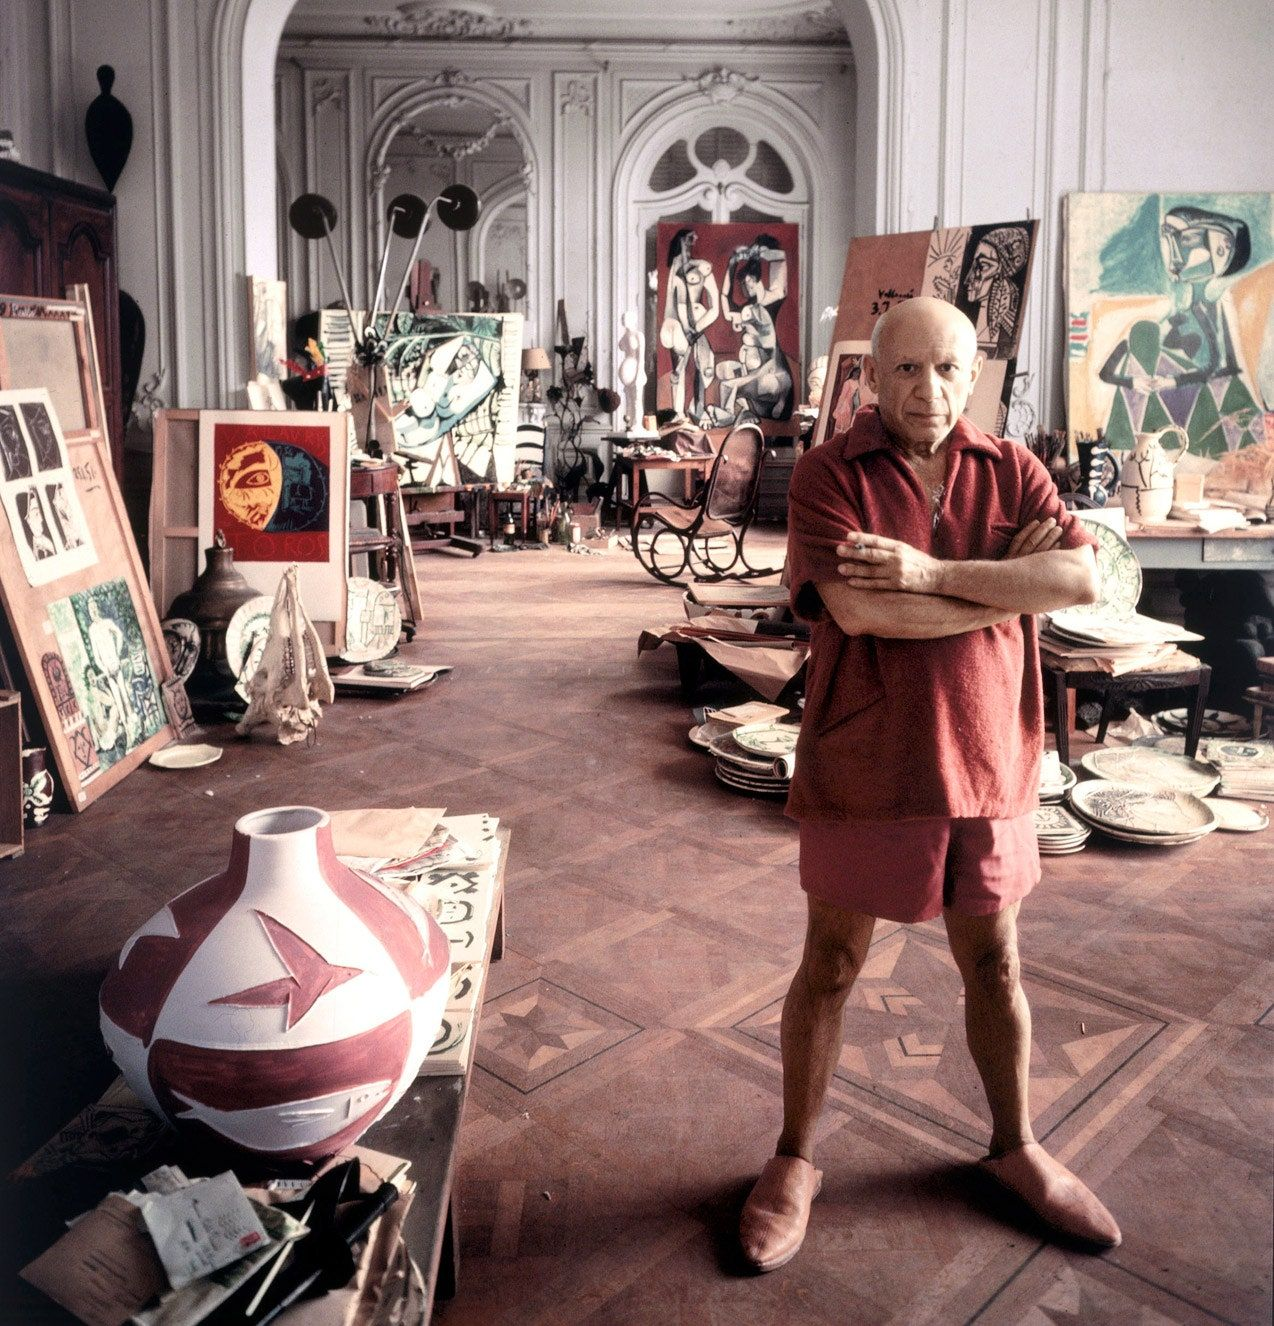 Pablo Picasso in Cannes, September 11, 1956